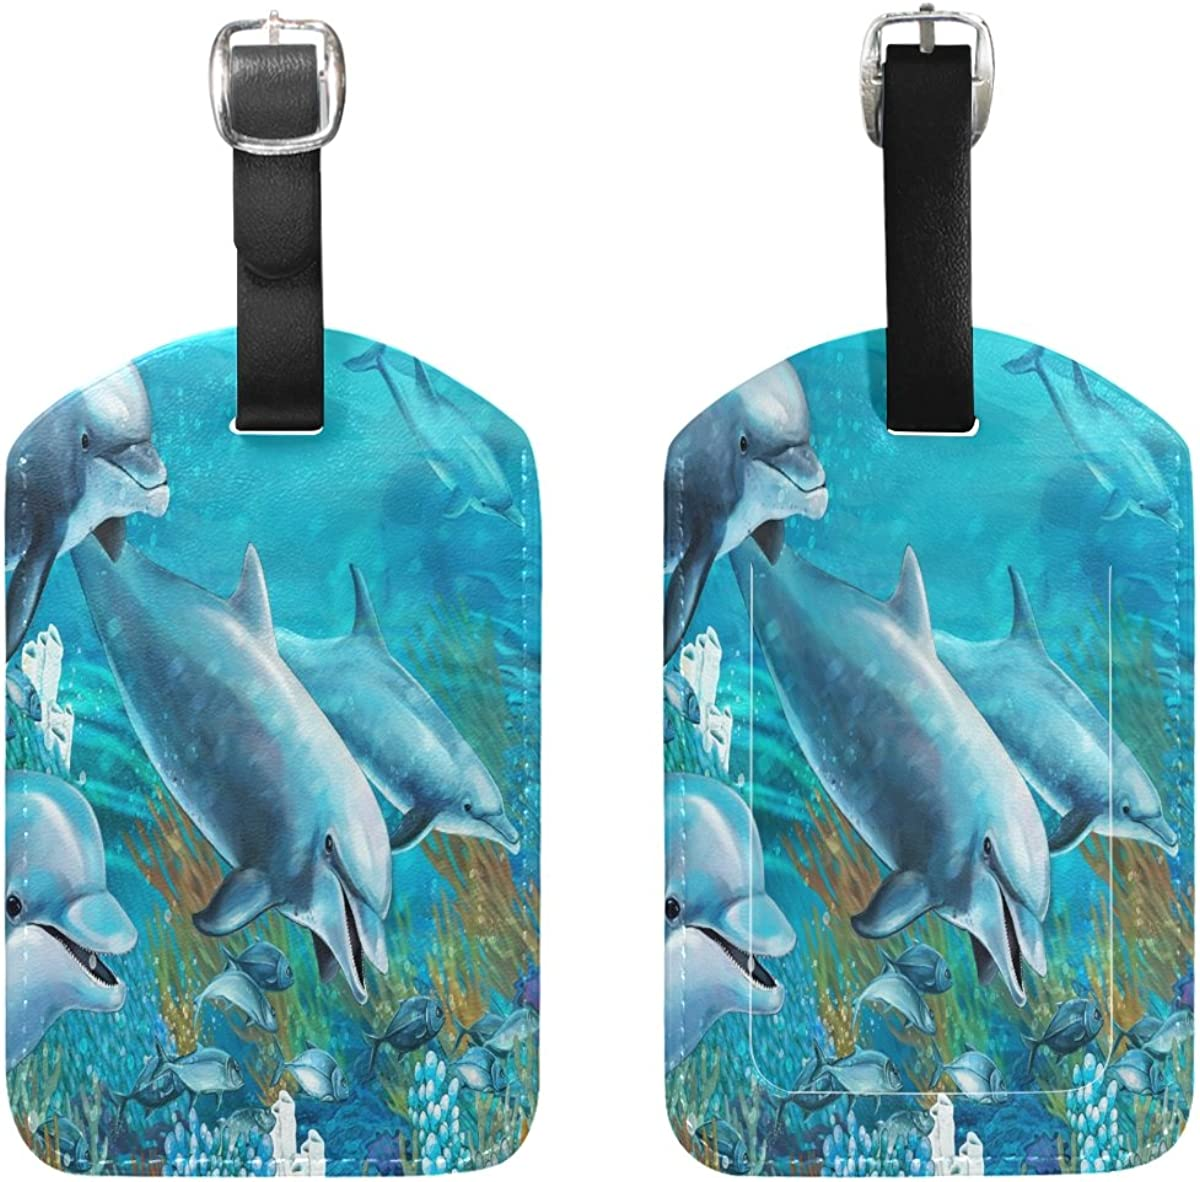 2 Pack Luggage Tags Dolphins Ocean Baggage Tag For Travel Bag Suitcase Accessories